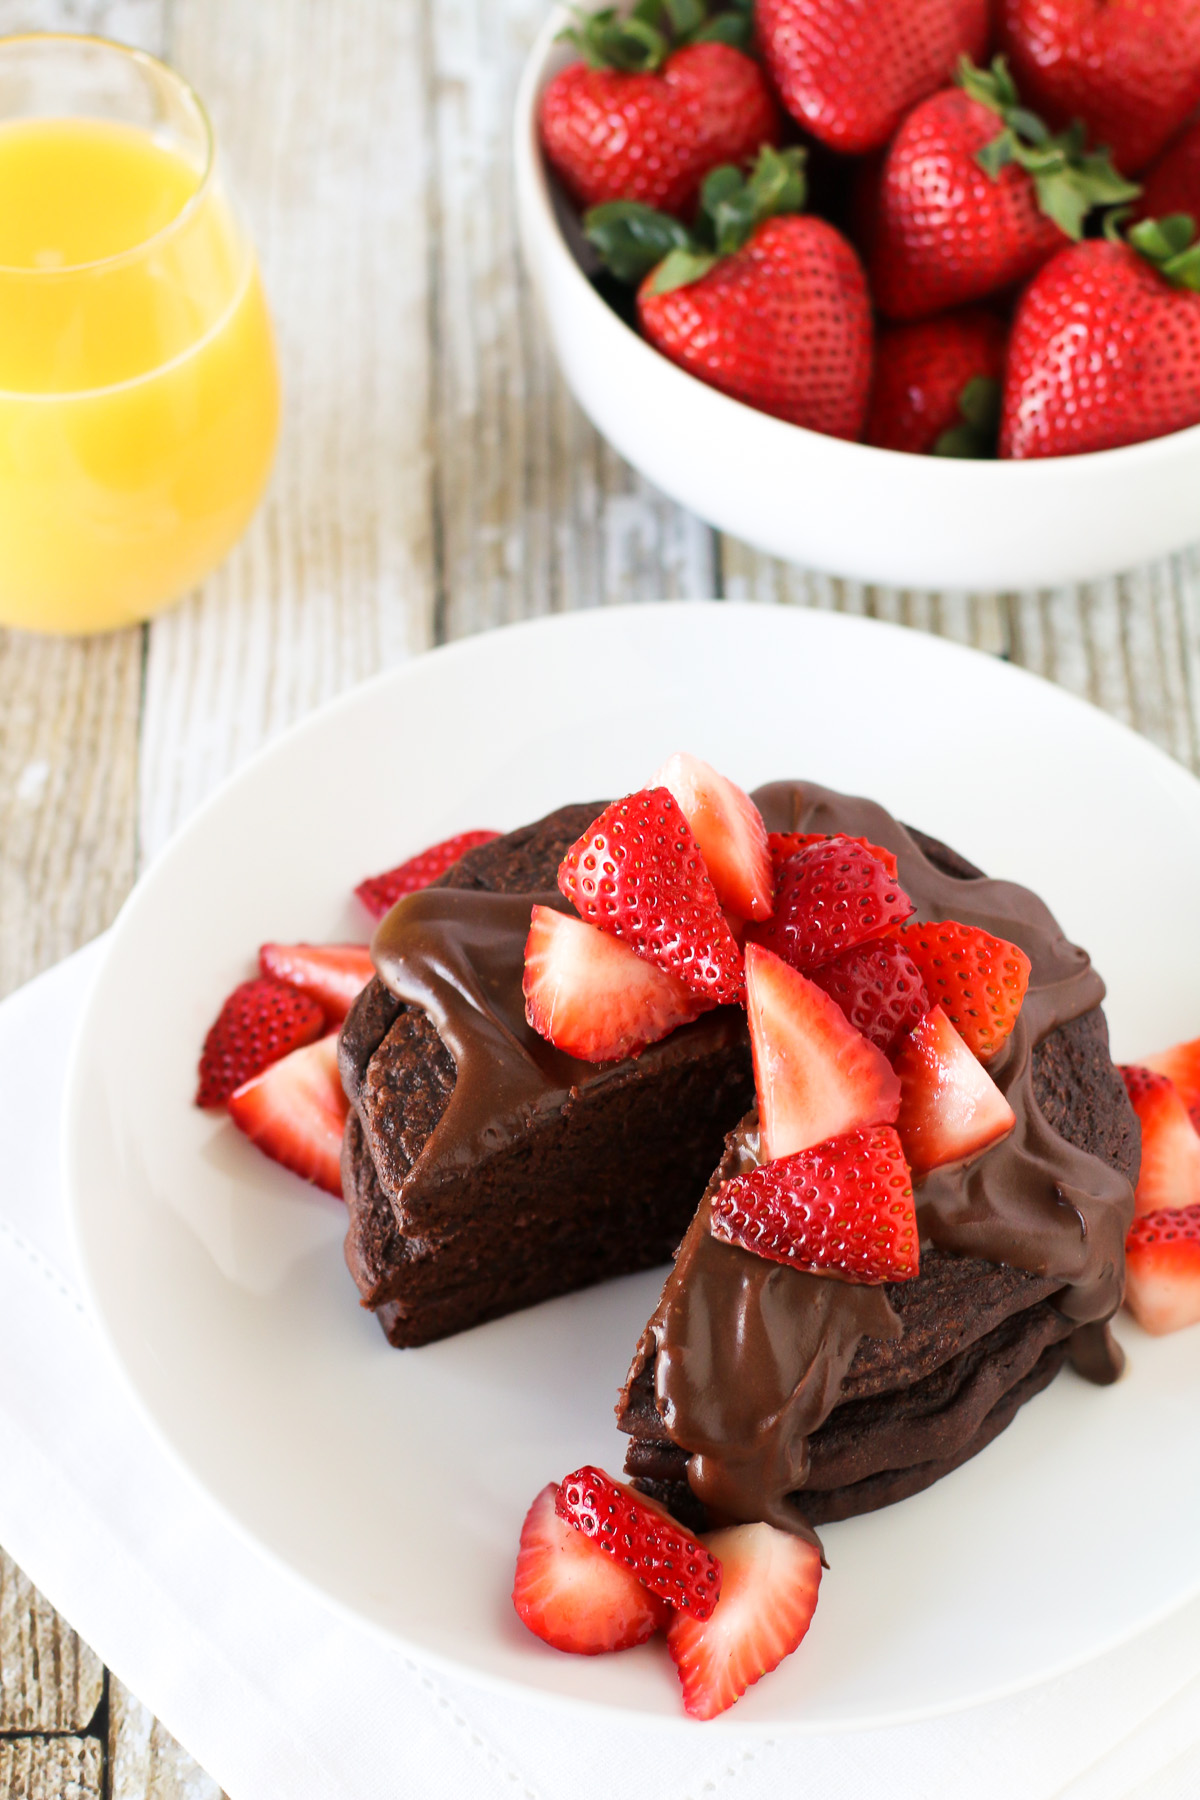 Gluten Free Vegan Double Chocolate Pancakes, featuring Bob's Red Mill egg replacer. Fluffy chocolate pancakes, covered in a simple chocolate sauce and fresh strawberries.